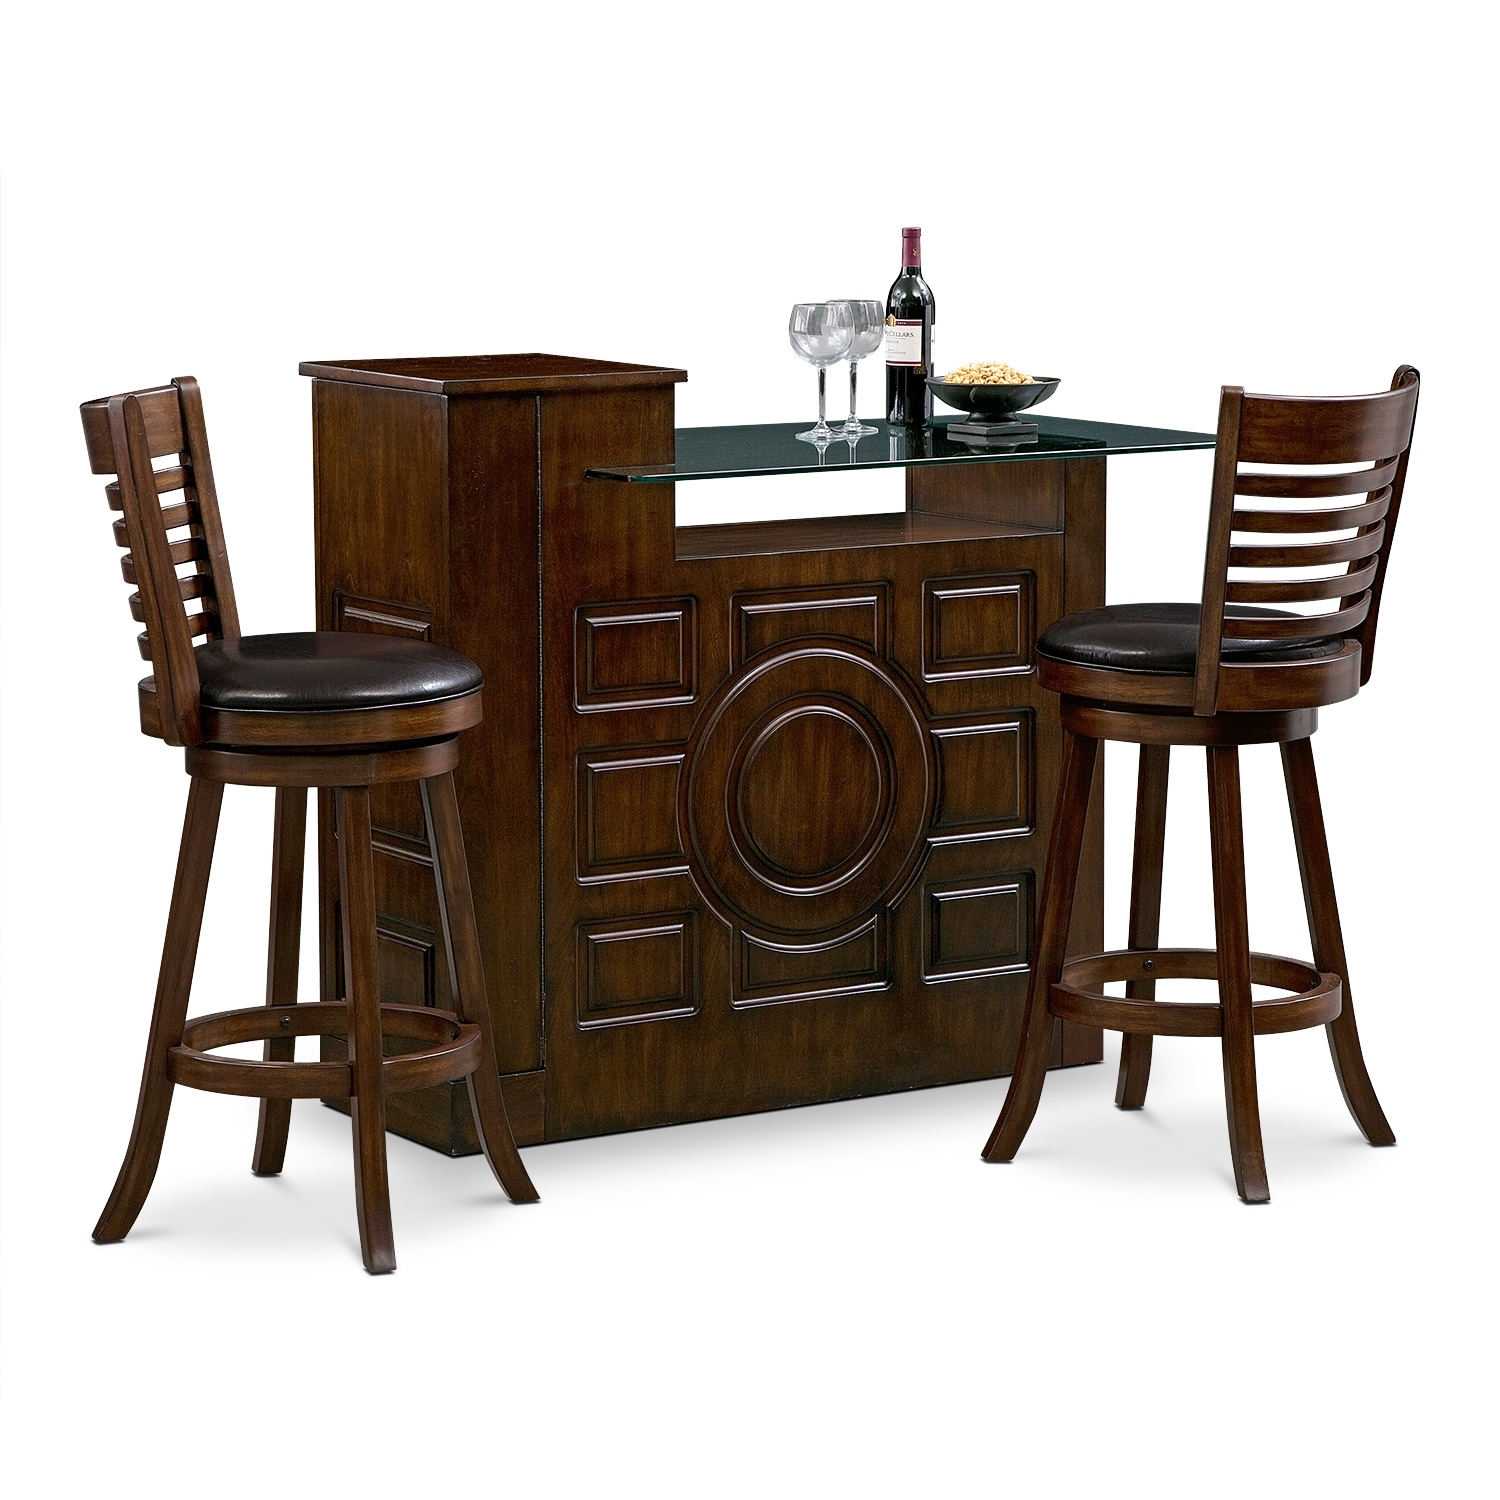 Accent and Occasional Furniture - Origins Chance 3 Pc. Bar Set